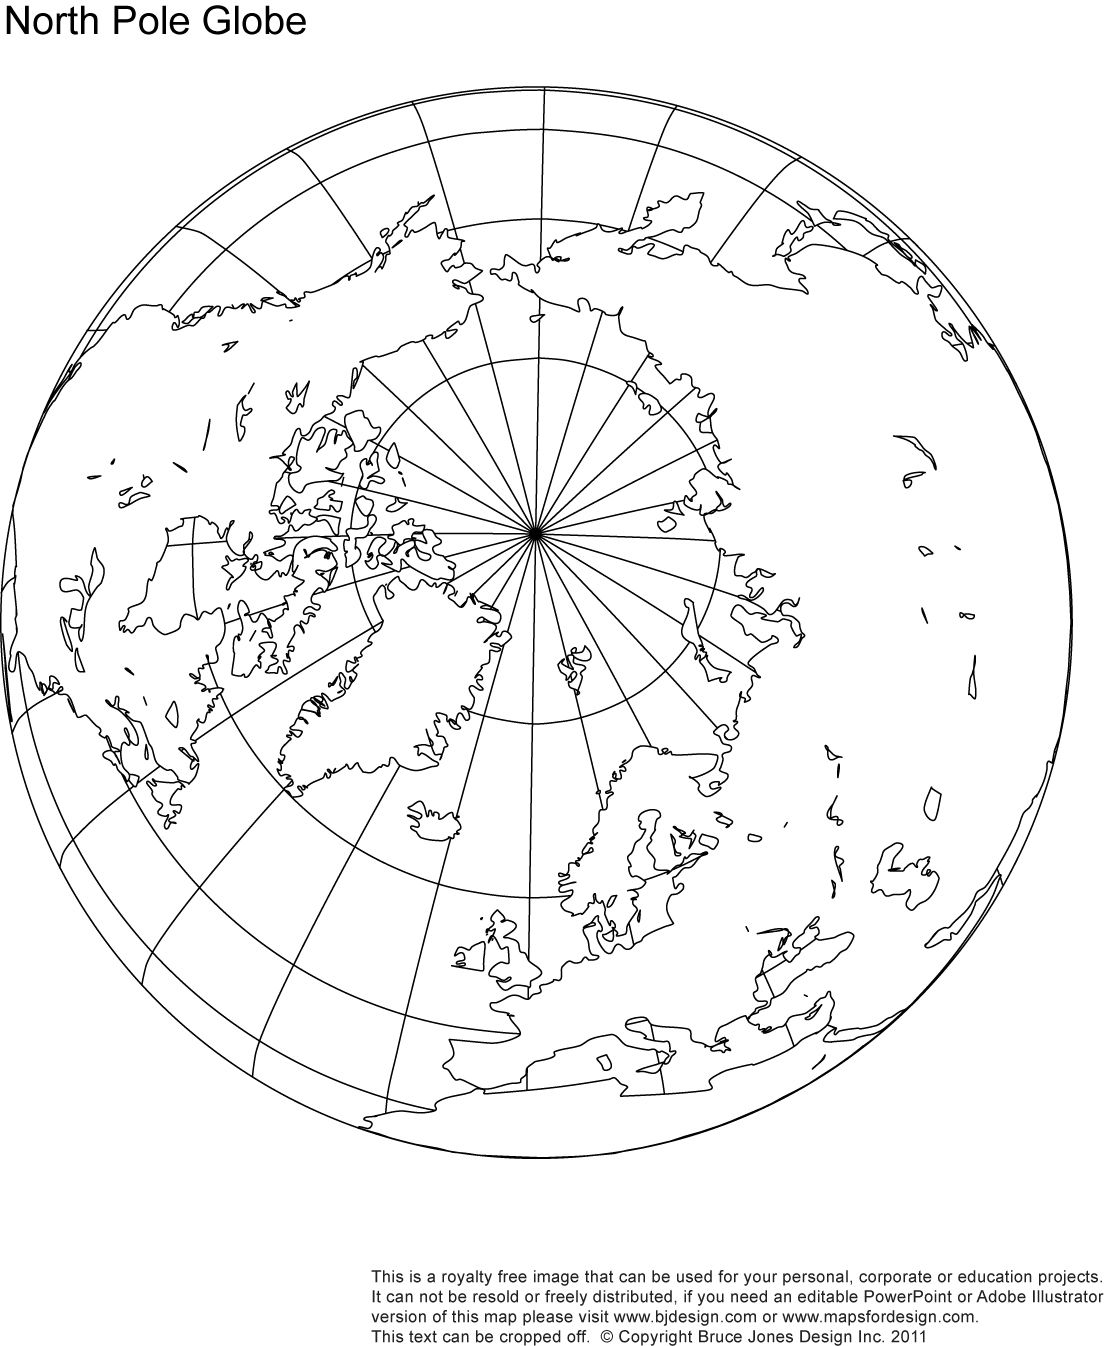 North Pole Globe Map Royalty Free When Mapping The Route